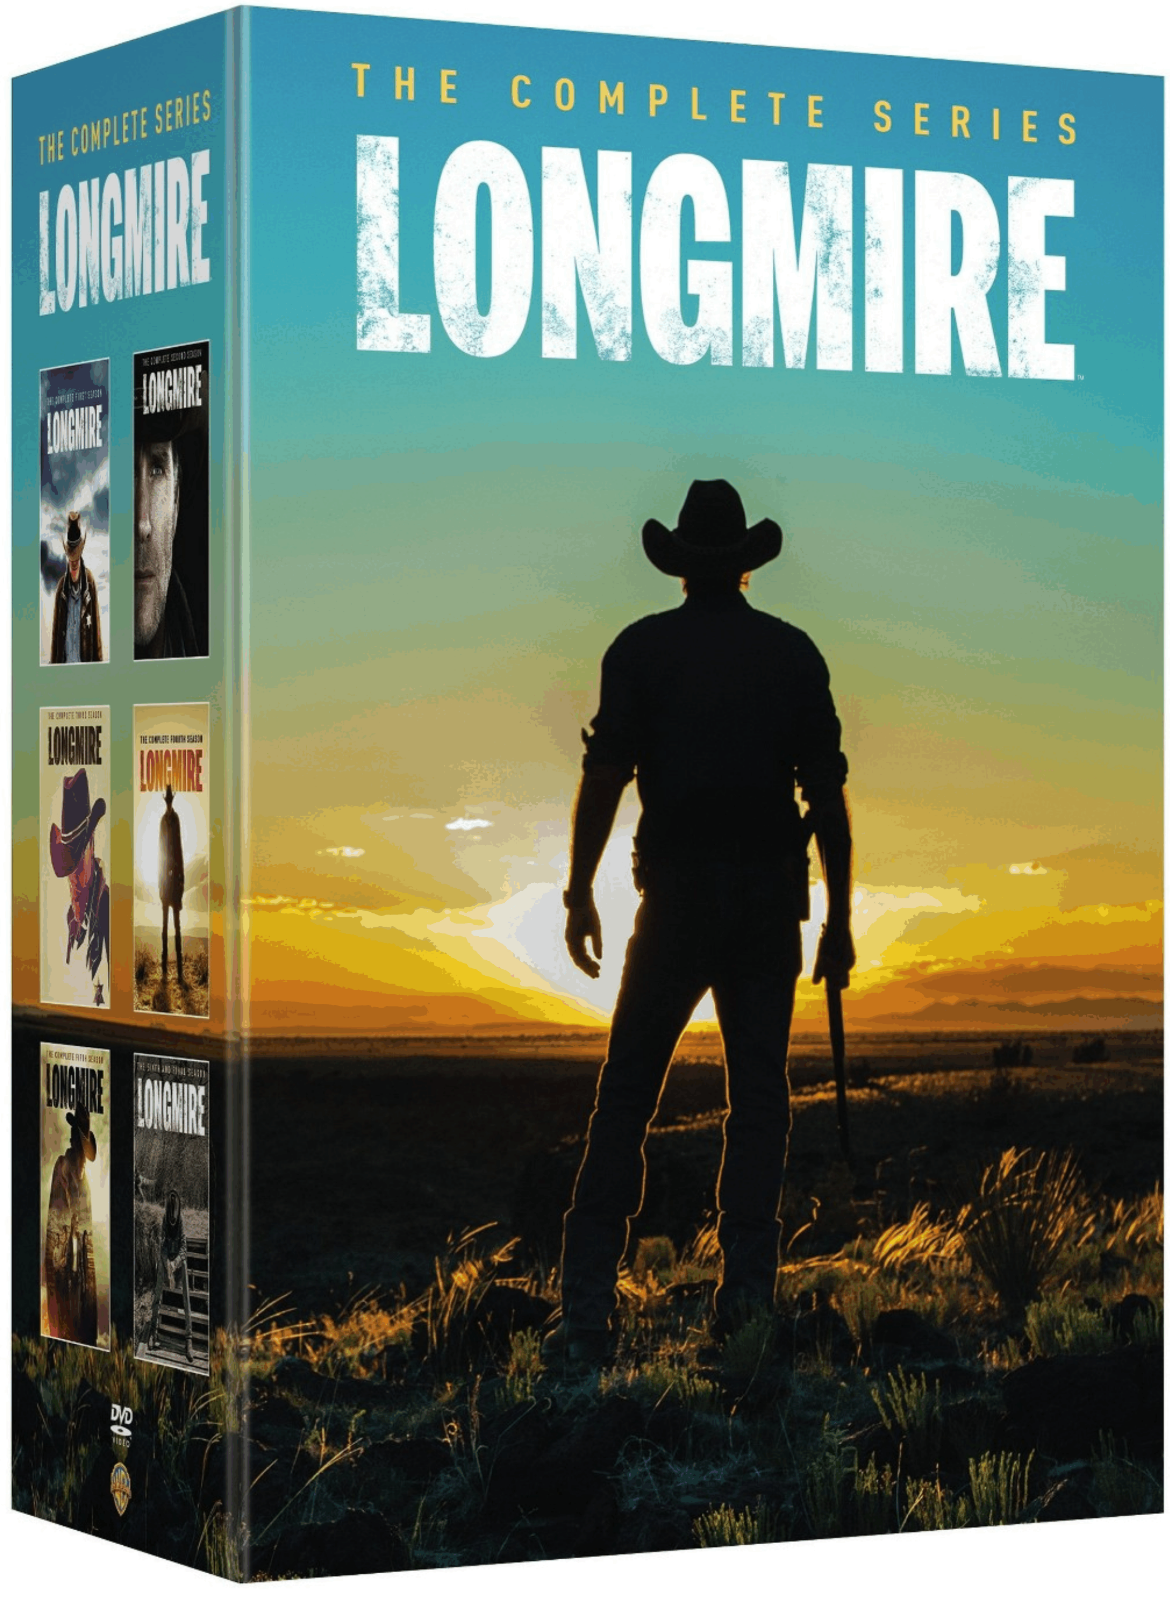 LONGMIRE Complete Series Collection Seasons 1-6 DVD Set [New]